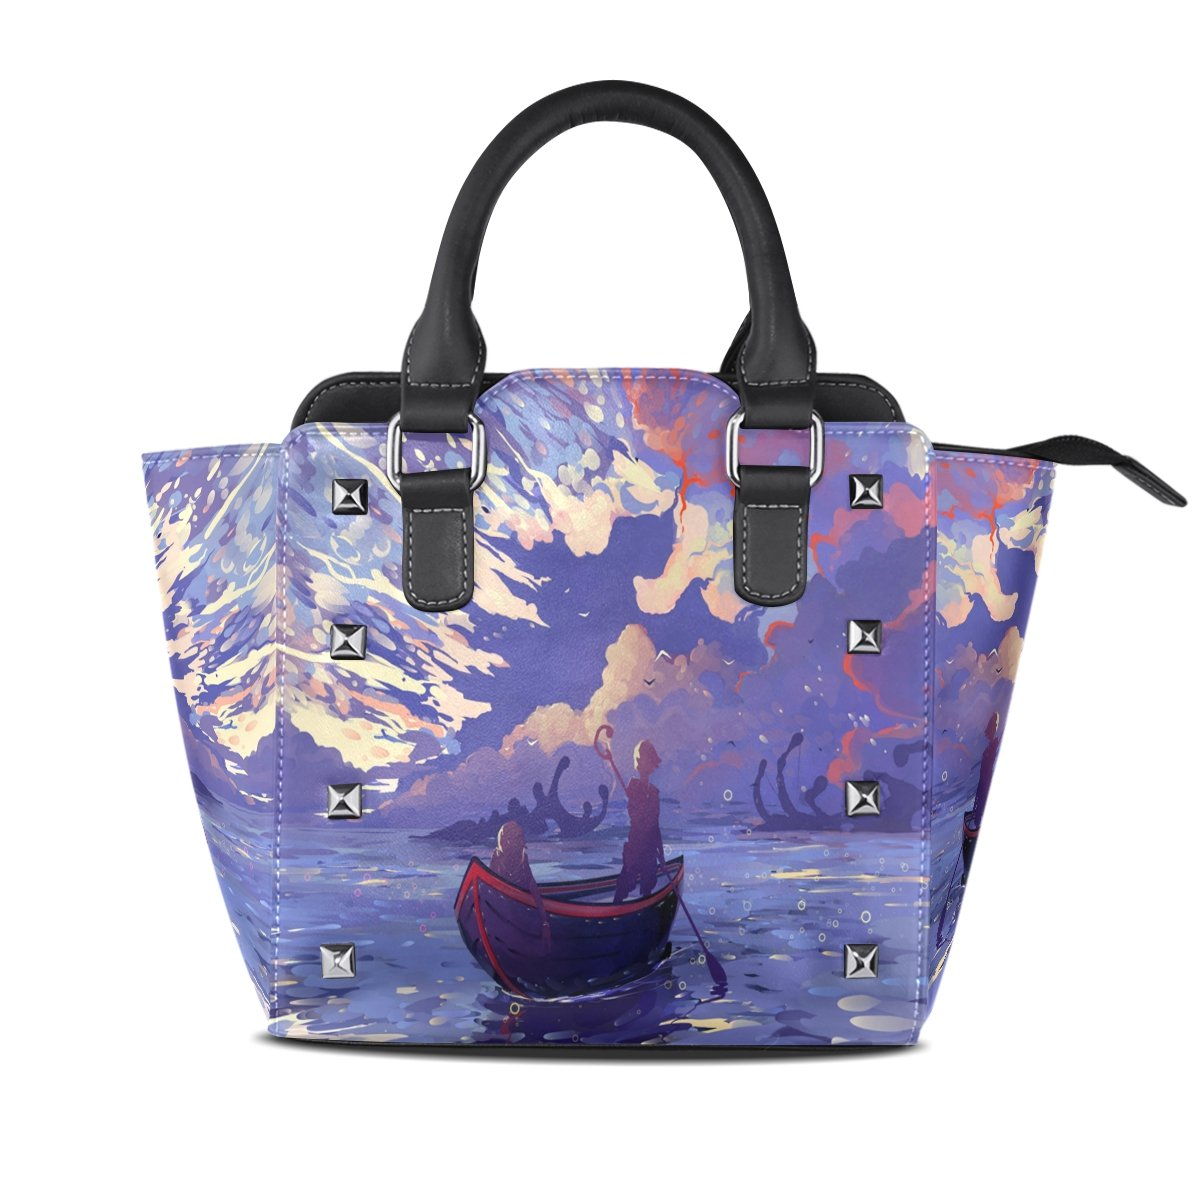 Womens Genuine Leather Hangbags Tote Bags Boat Purse Shoulder Bags